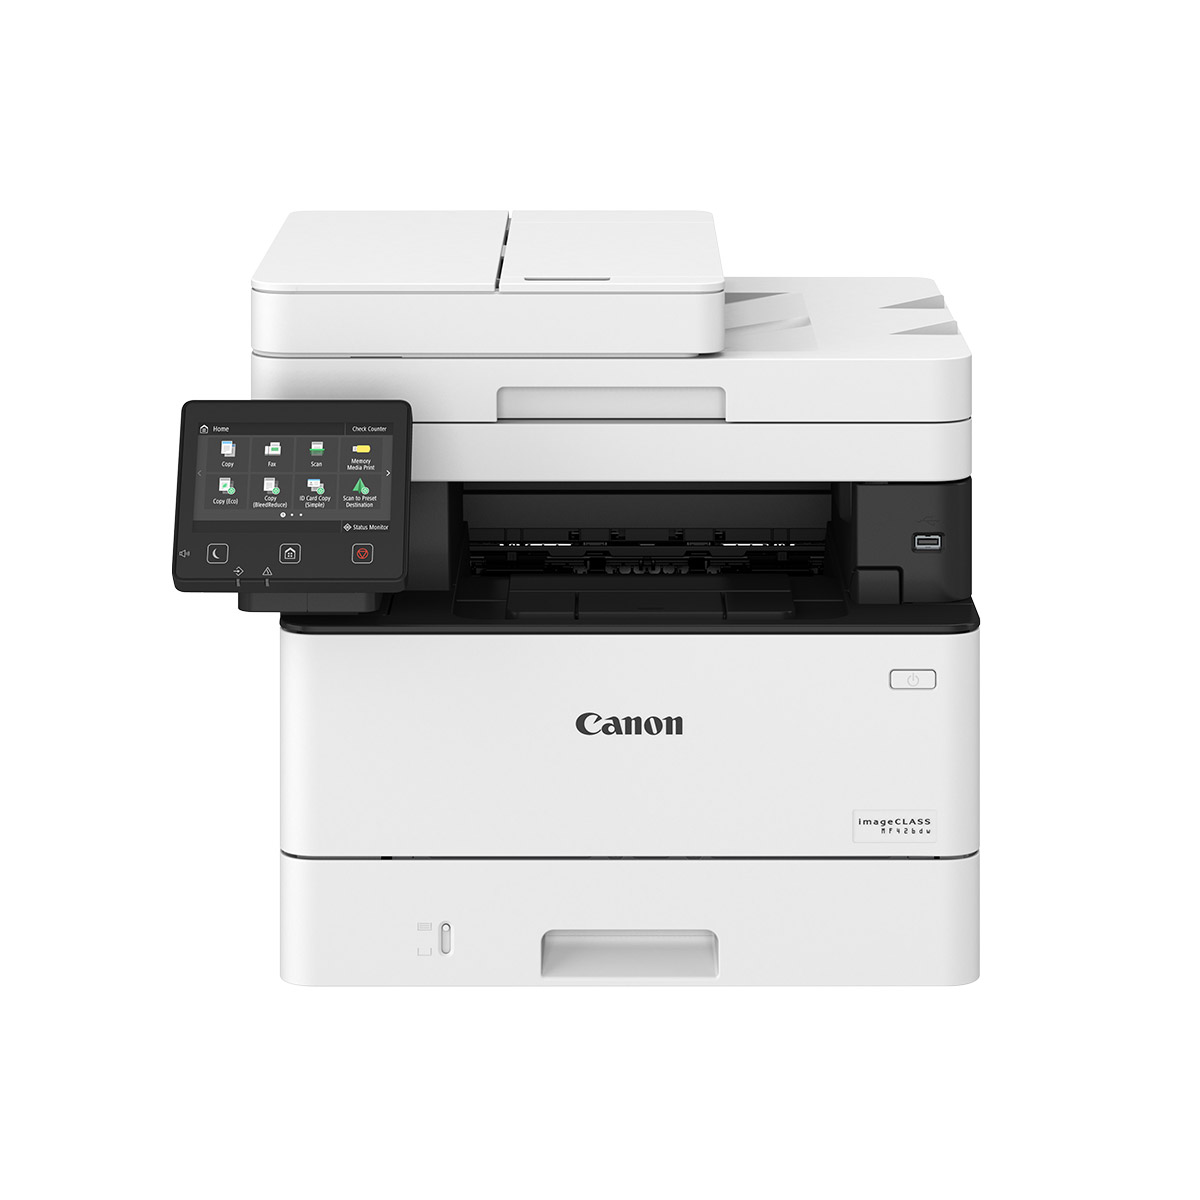 Drivers, Manuals and Firmware from Canon Support | Canon New